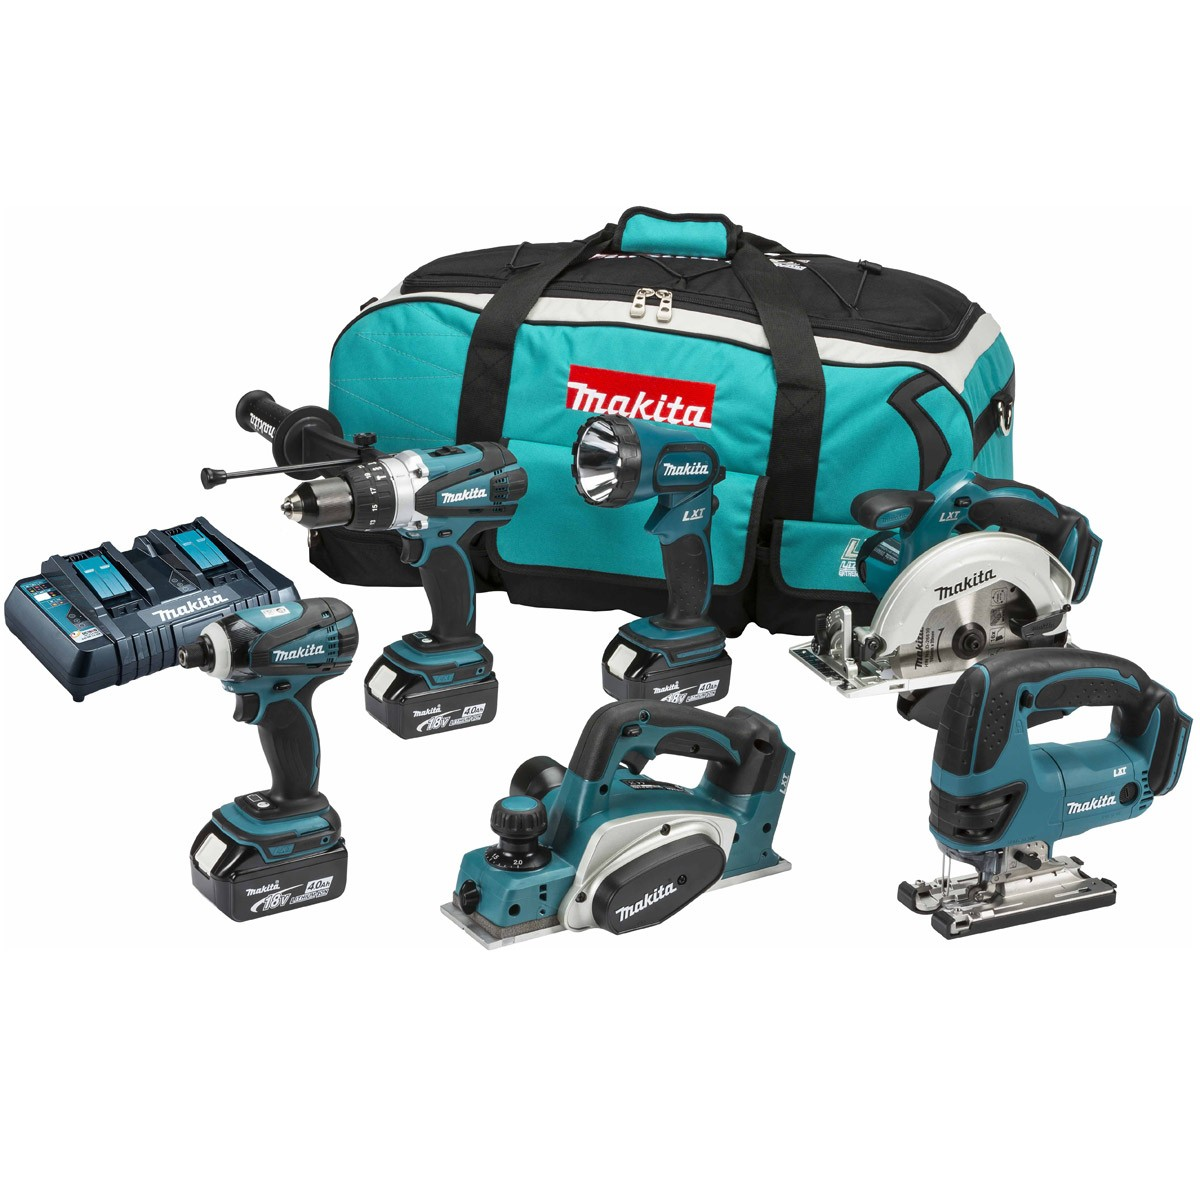 Makita DLX6012PM 18v 6 Piece Kit inc 3x 4Ah Batts with Twin Charger